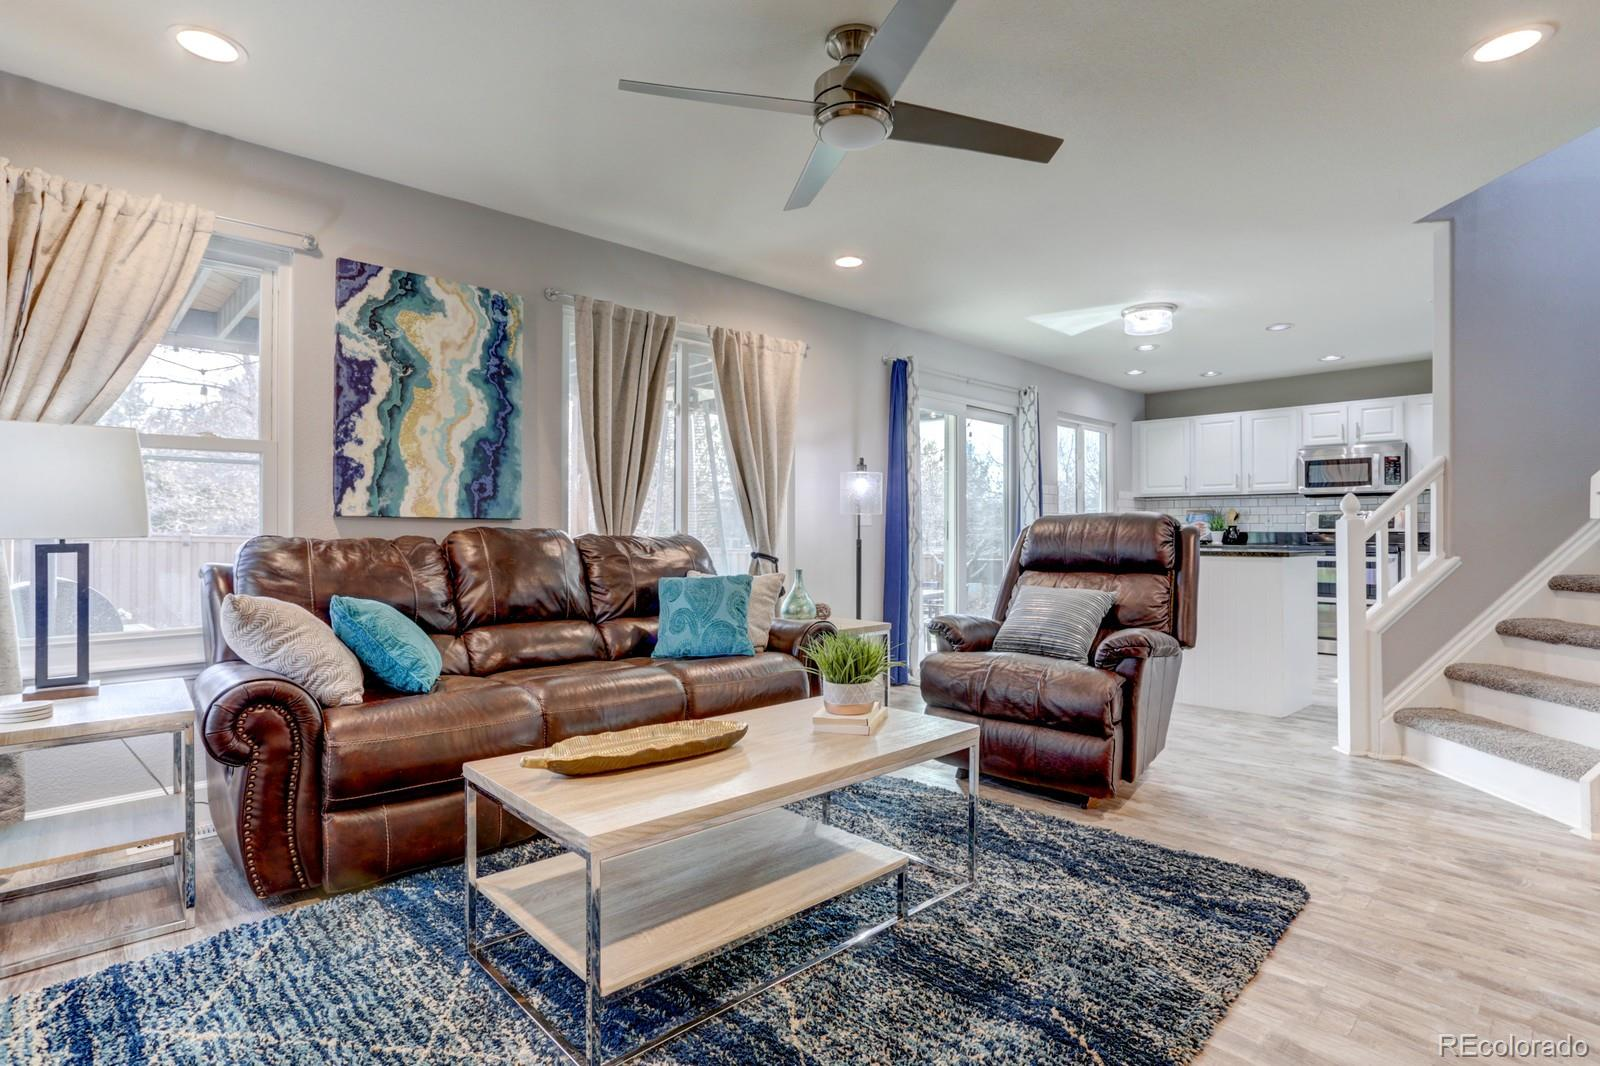 MLS# 3110413 - 8 - 9489 Wolfe Court, Highlands Ranch, CO 80129